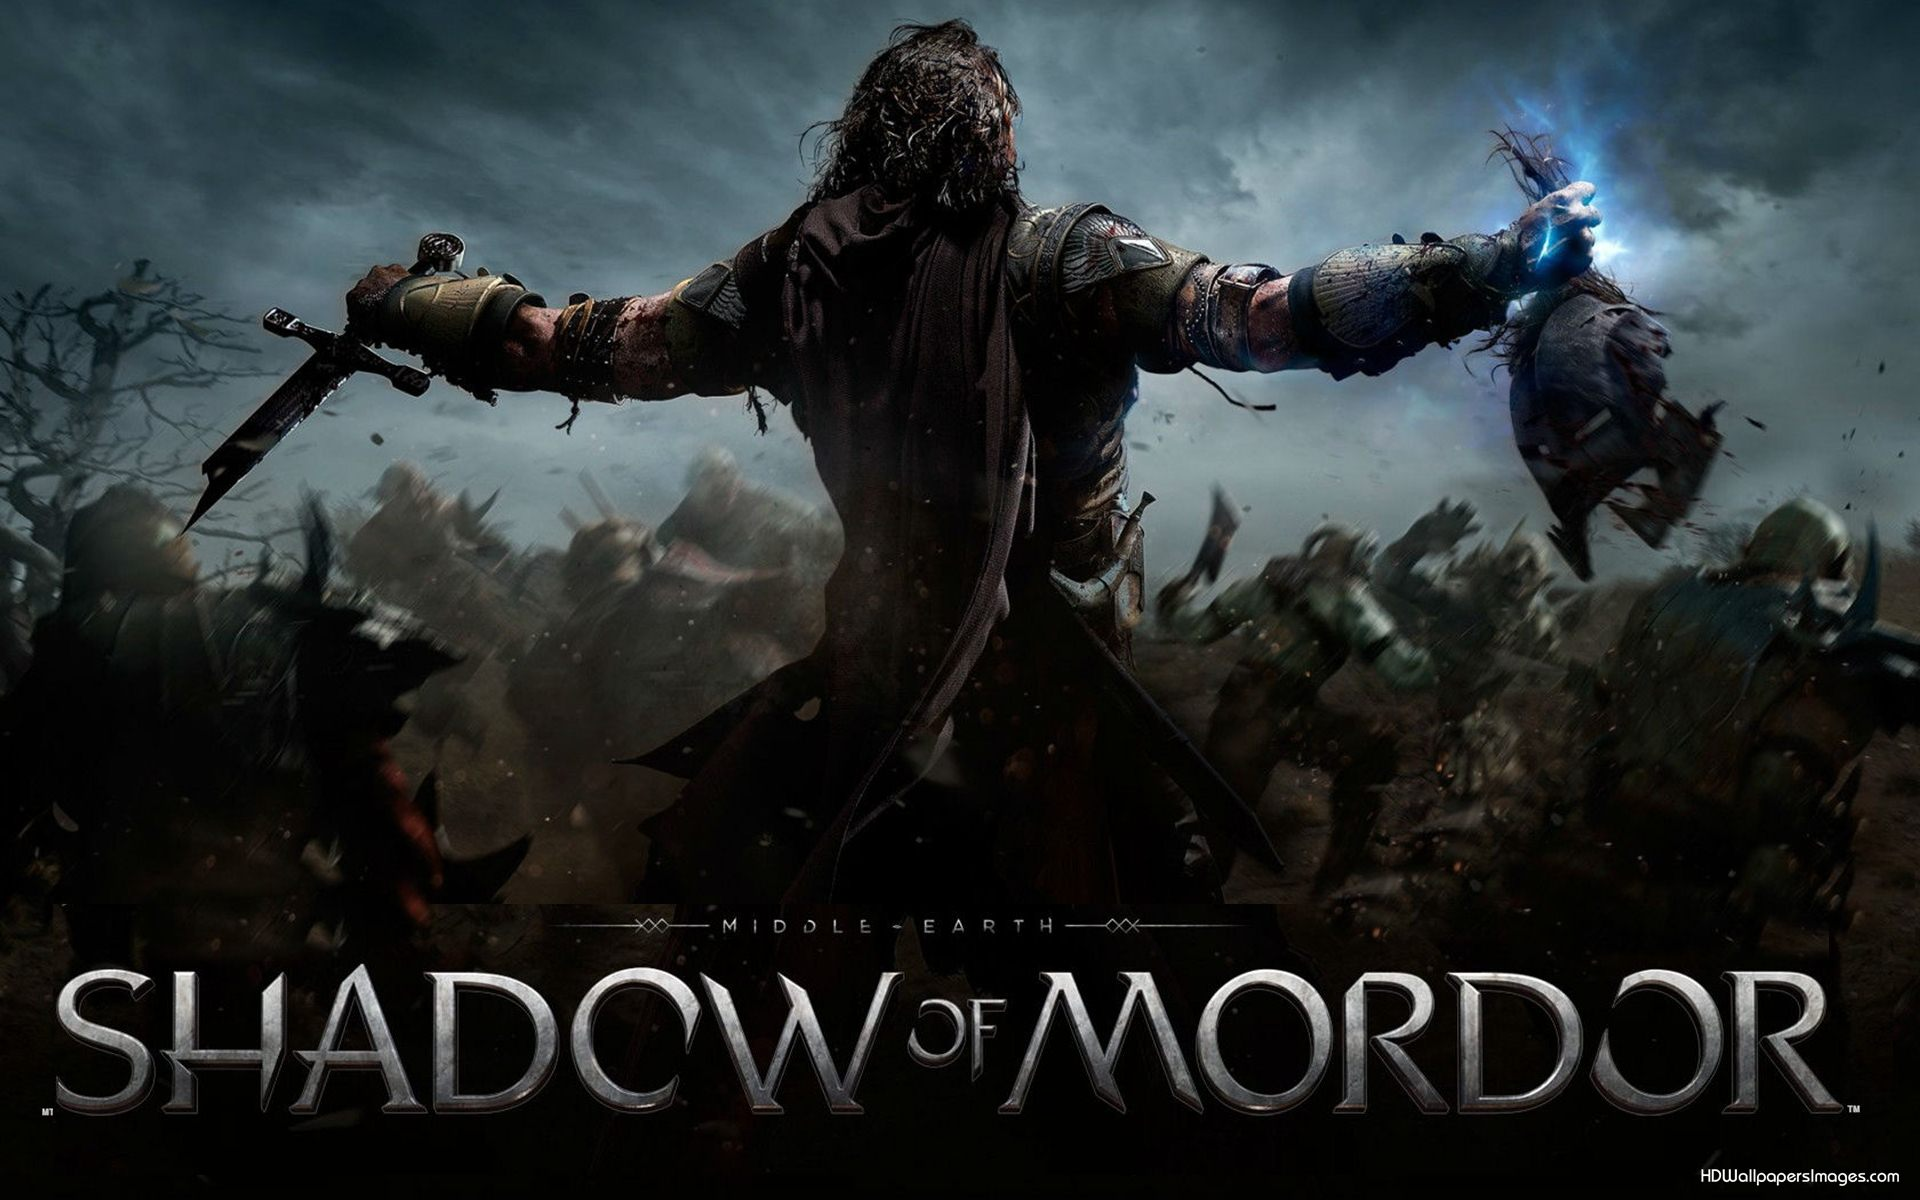 http://garryschyman.com/wp-content/uploads/2014/05/middle-earth-shadow-of-mordor-2014-game.jpg